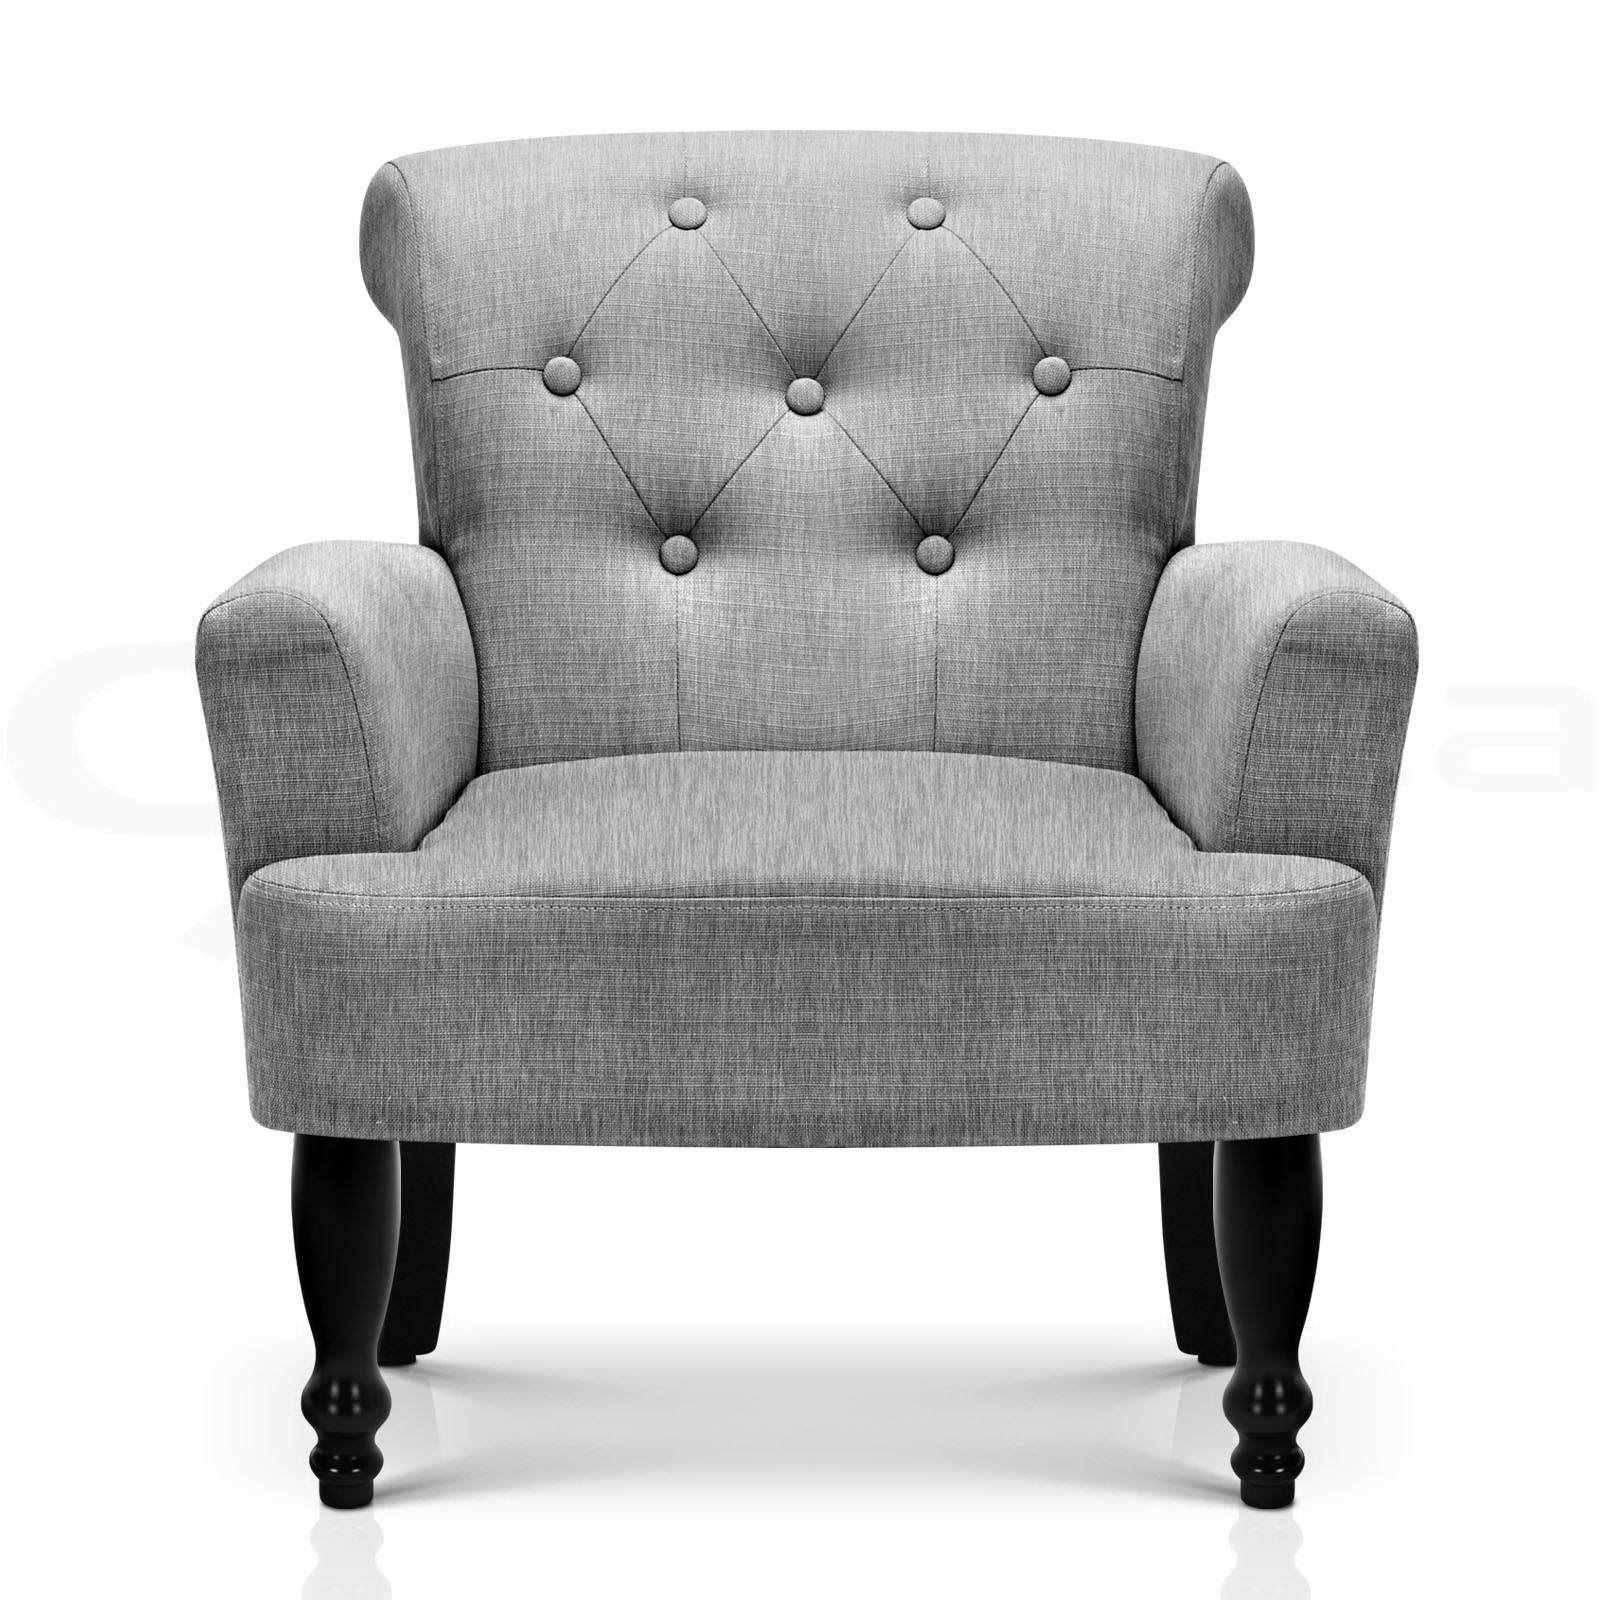 Retro Wing Chair Artiss French Lorraine Chair Retro Wing Sofa Accent